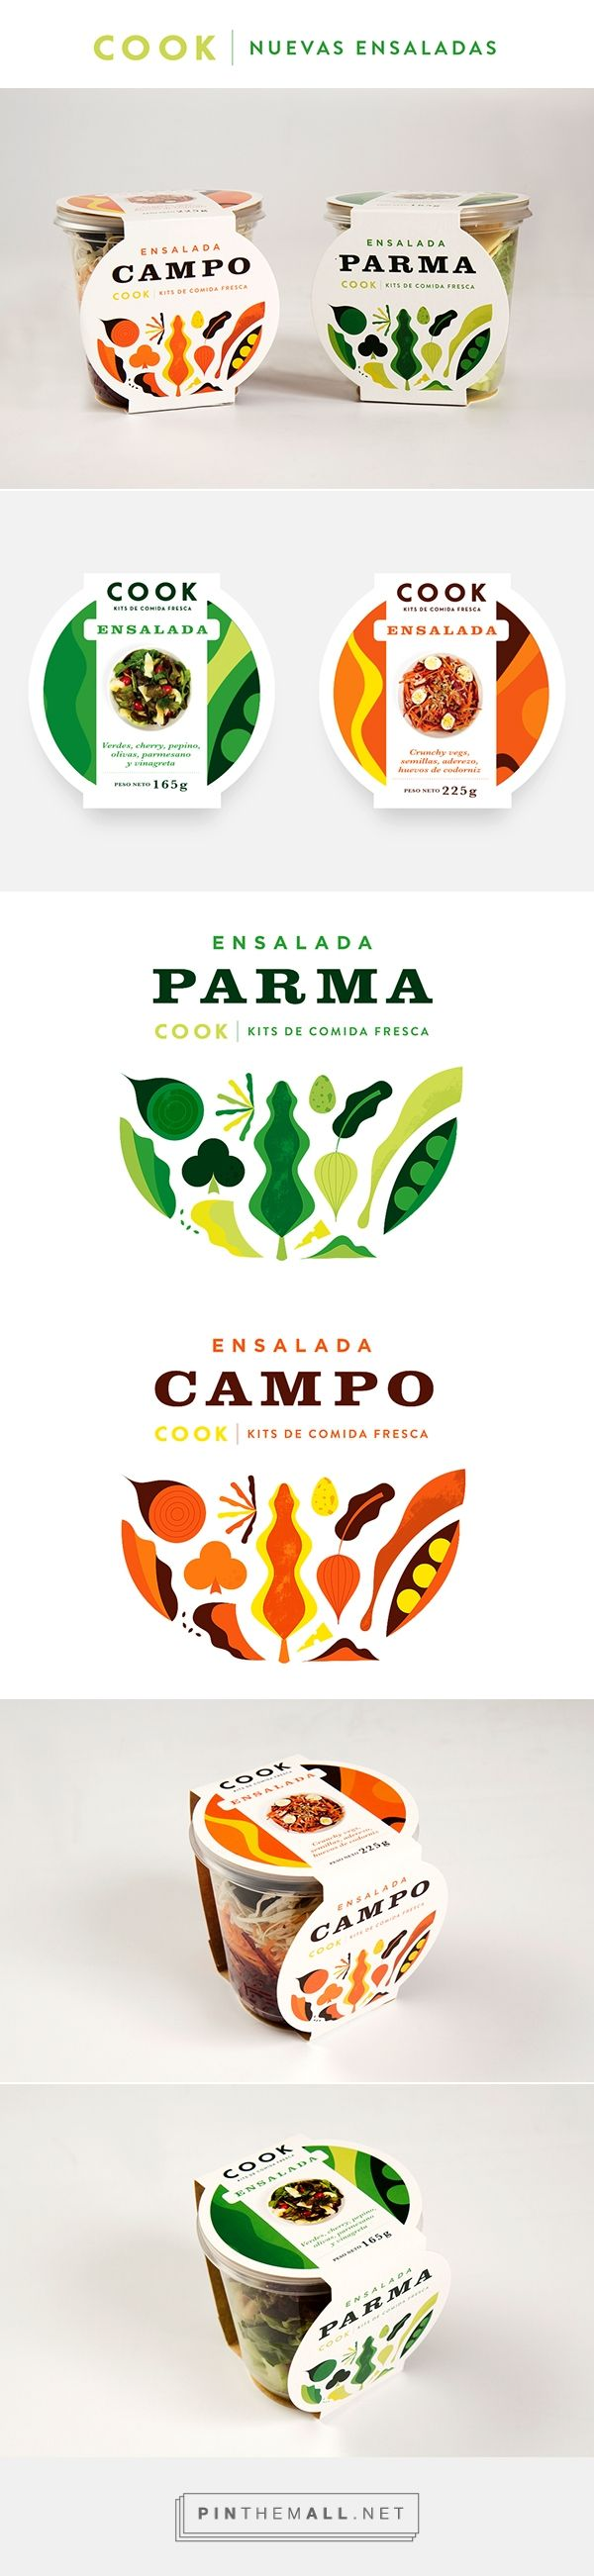 "COOK ENSALADAS on Behance by Mundial curated by Packaging Diva PD. The Uruguayan fresh food brand called COOK launched its new ready to eat salads. His first two mix are ""PARMA"" and ""CAMPO"" packaging with cool artwork with much parmesan, cherry tomatoes, arugula and lots of olive oil"